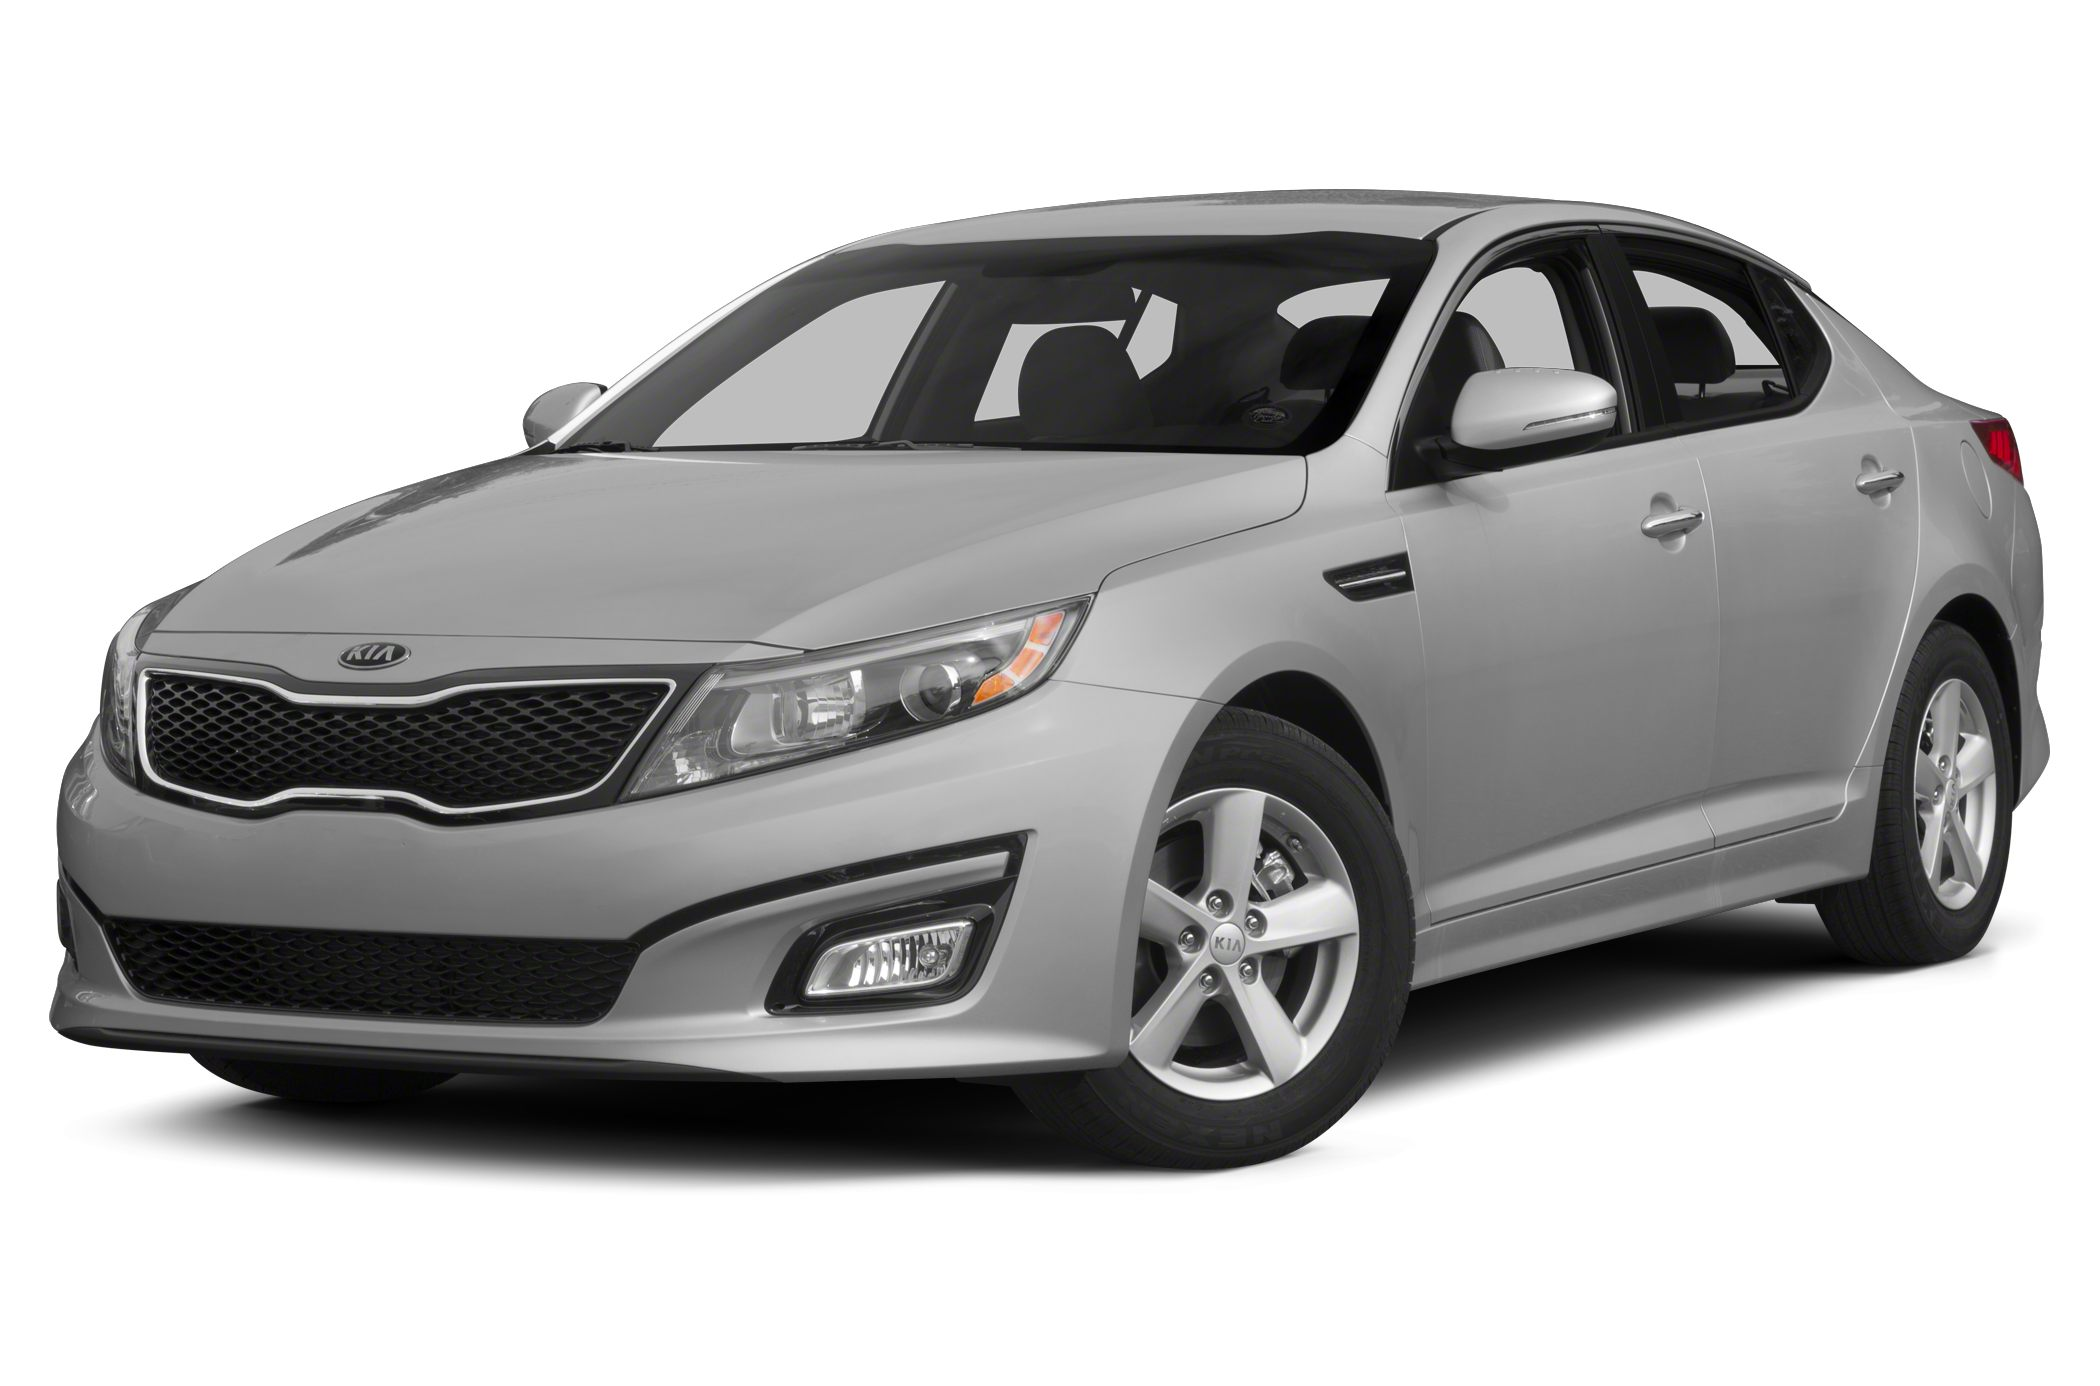 2014 Kia Optima LX Miles 29940Color Silver Stock UC2079 VIN 5XXGM4A77EG333792